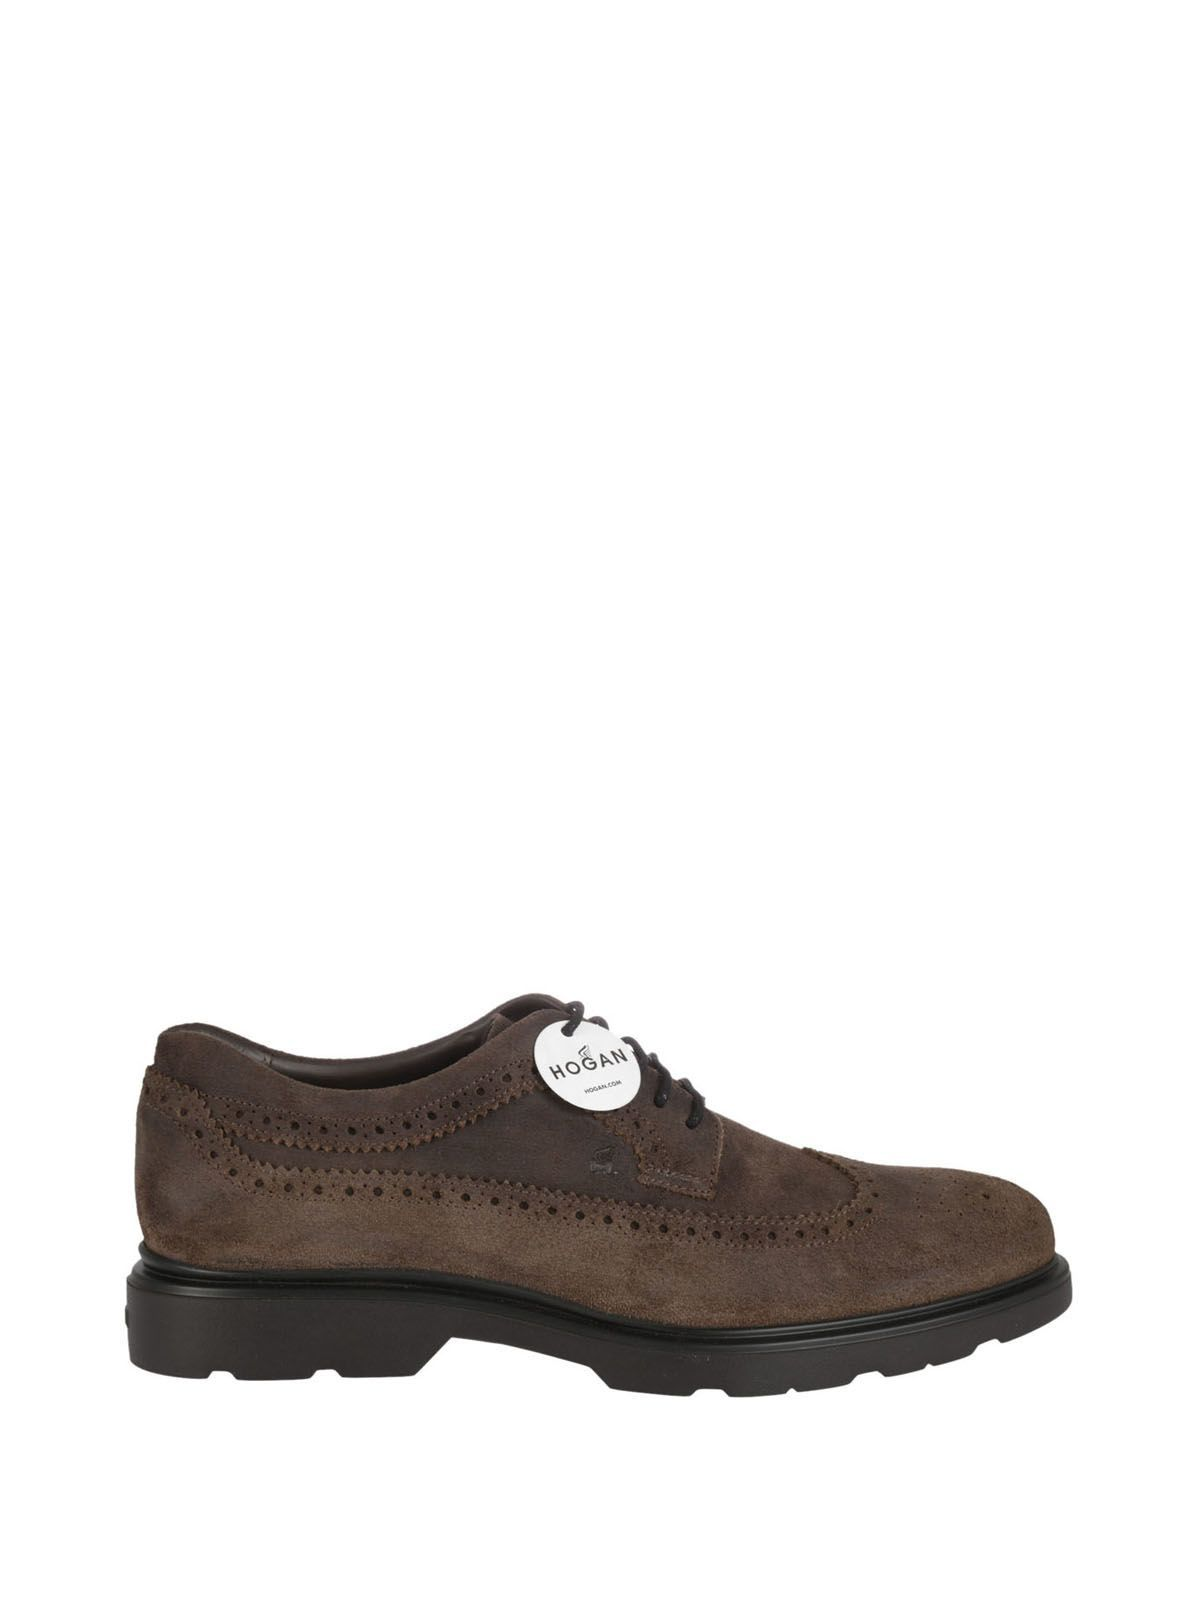 H304 loafers - Brown Hogan a92wbifg